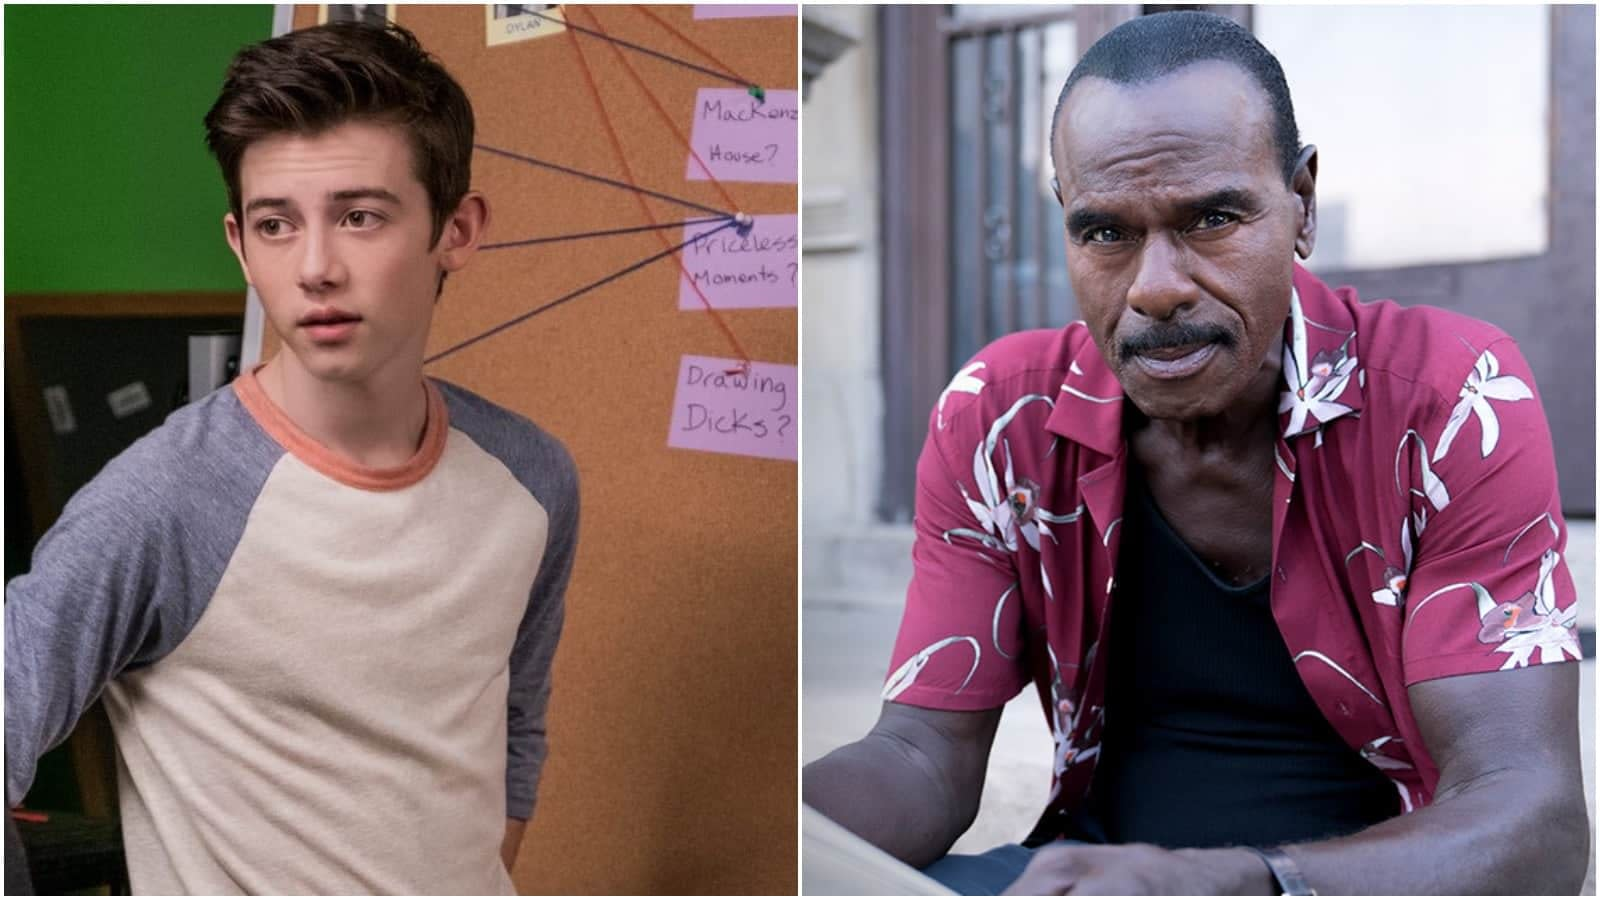 'Locke & Key': American Vandal's Griffin Gluck, The Chi's Steven Williams Join Netflix Series